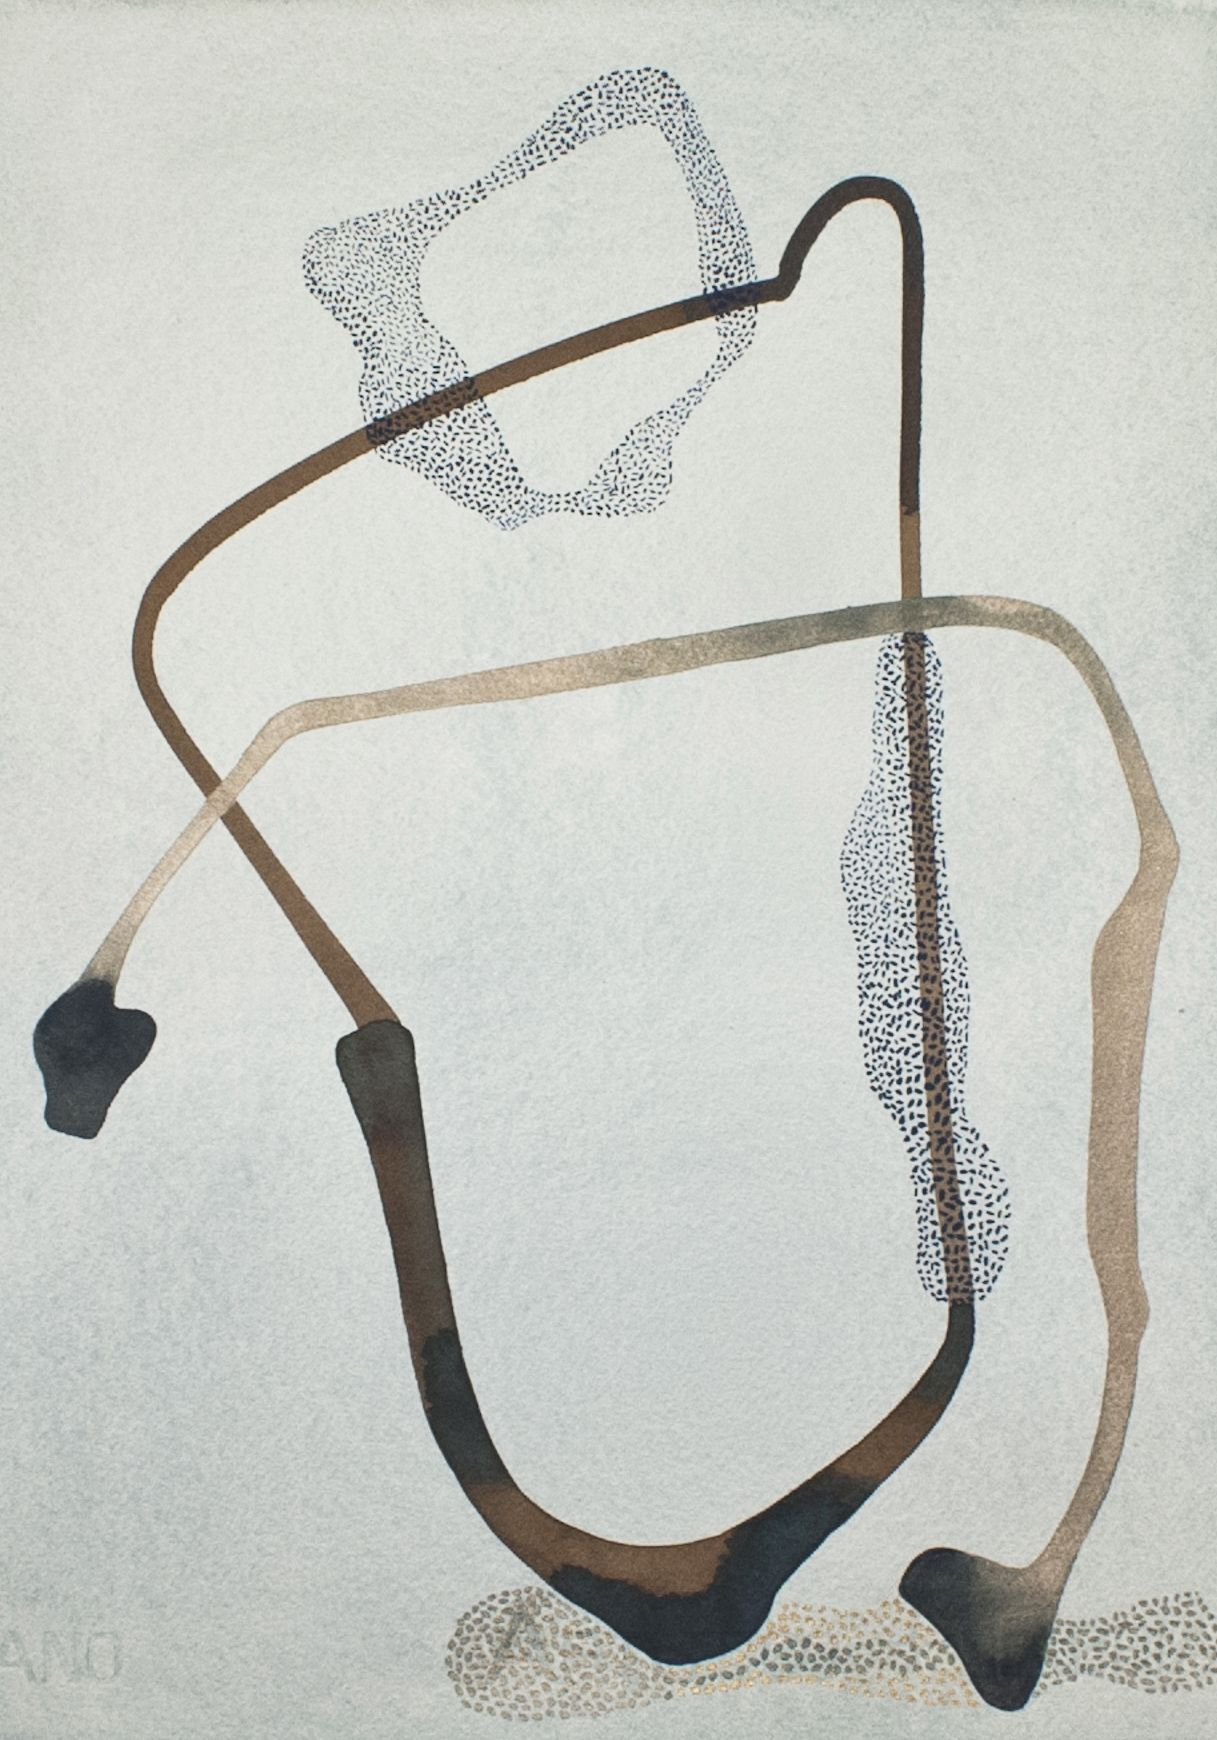 Manisha Parekh Untitled 2